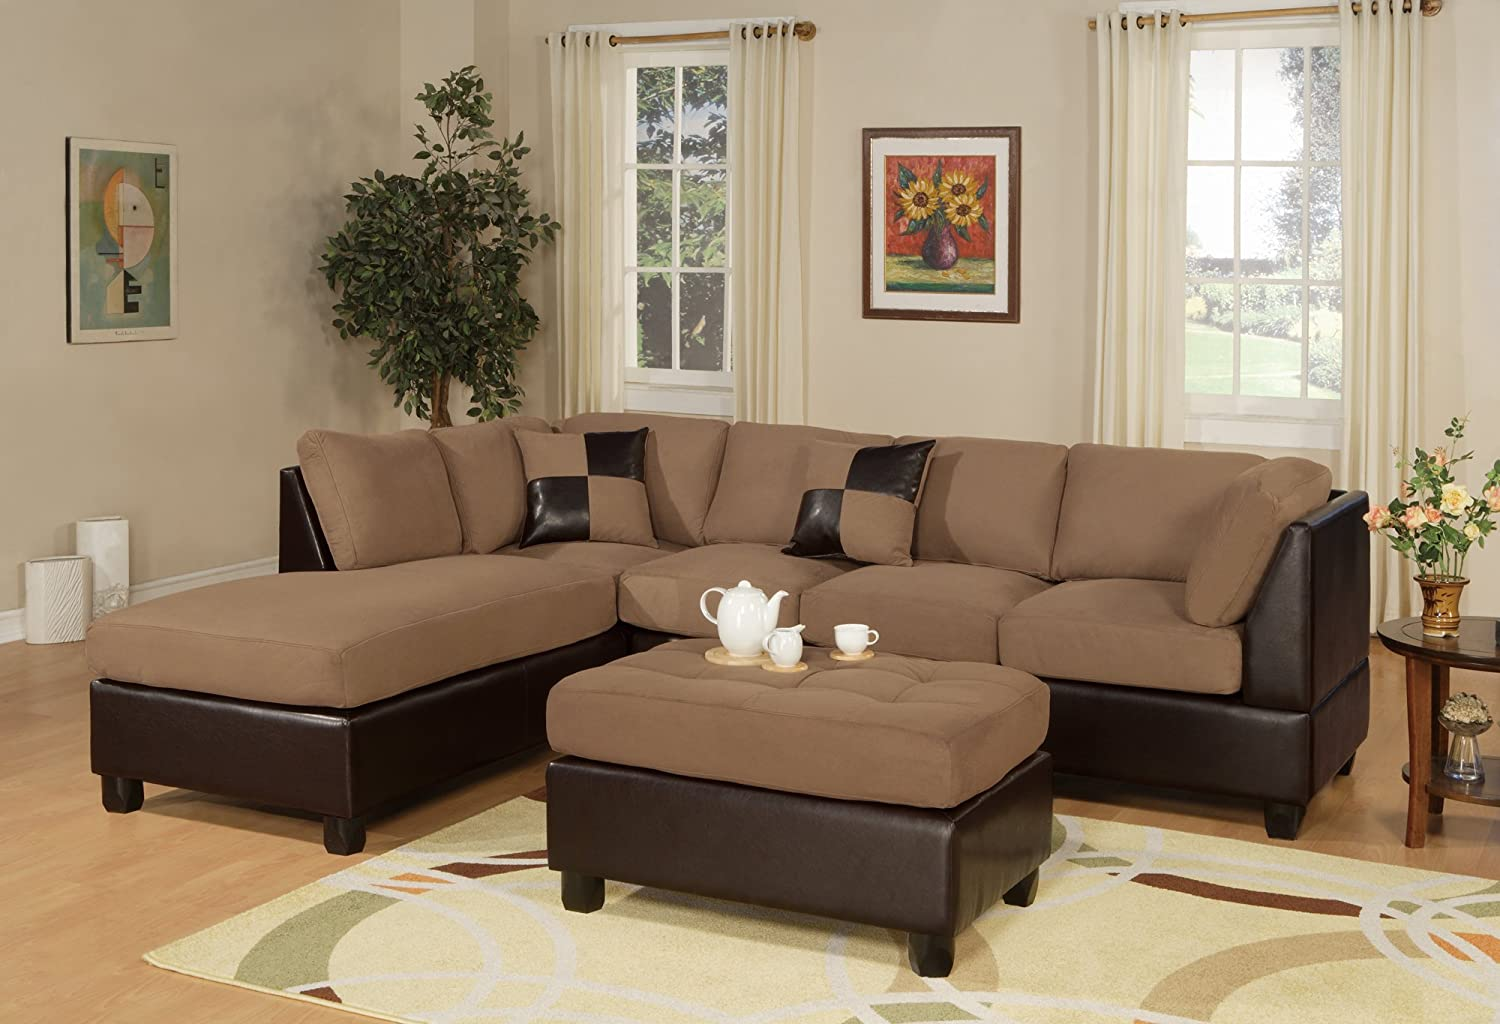 Amazon.com Bobkona Hungtinton Microfiber/Faux Leather 3-Piece Sectional Sofa Set Saddle Kitchen u0026 Dining : sectionals for sale online - Sectionals, Sofas & Couches